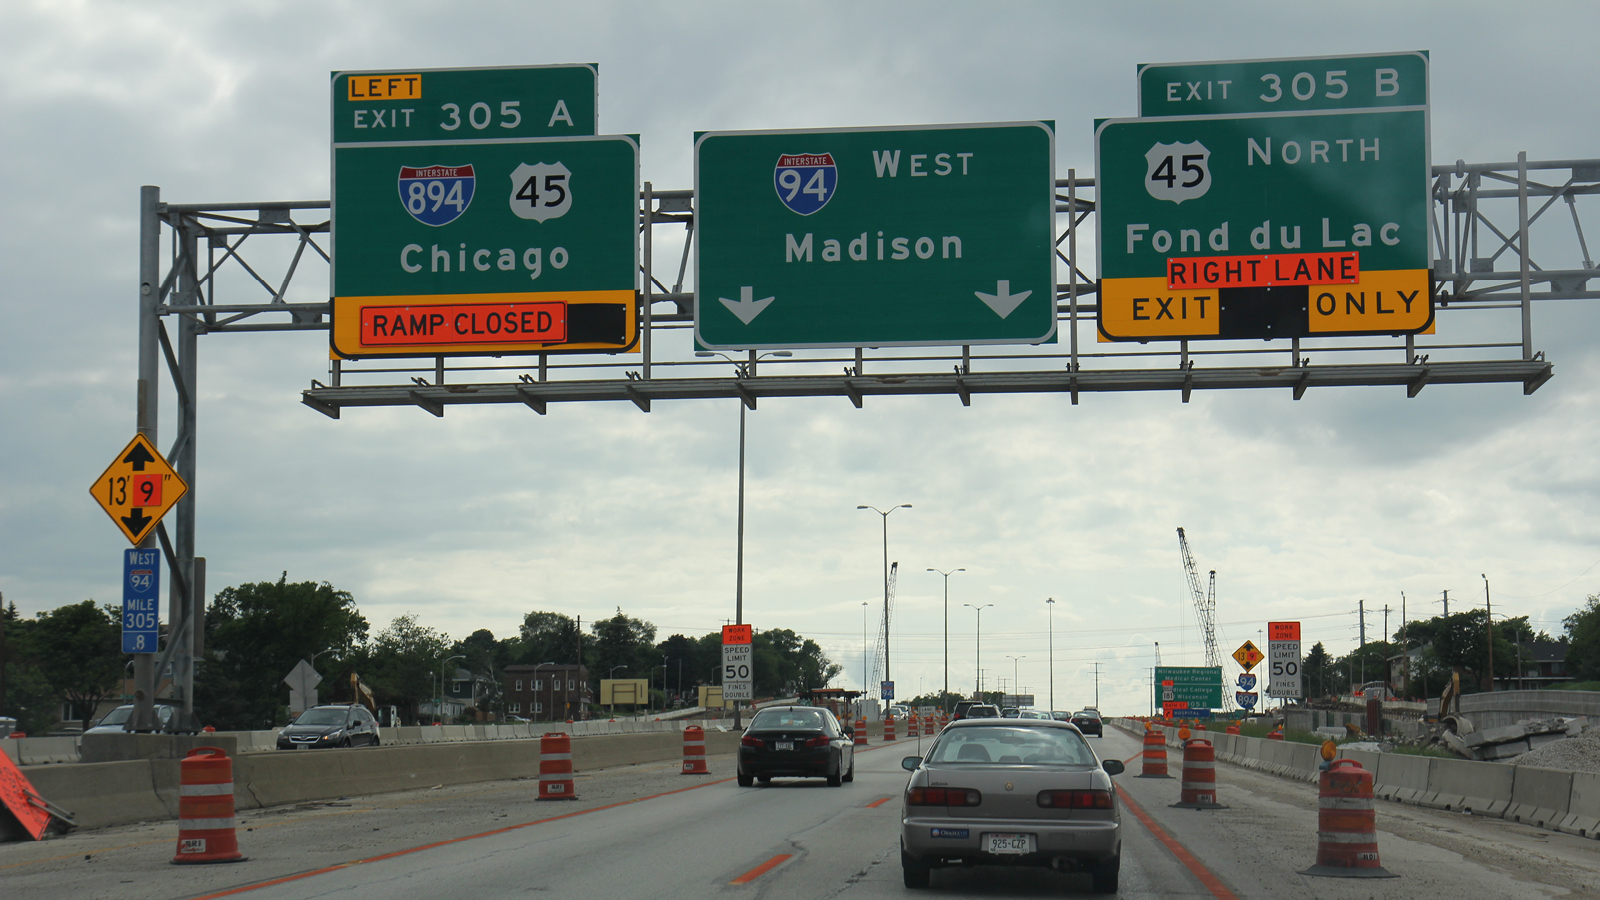 """<h3 style=""""color:#AAA;"""">CASE STUDY</h3><h4 style=""""color:#FFF; font-size:2em;"""">I-94 East-West Expansion in Milwaukee<br>COST: $1.15 billion</h4><p>Insisting on a wider road despite its own data showing that feared traffic increases are not materializing, the Wisconsin Department of Transportation wanted to rebuild an existing highway as an eight-lane double-decker route through a narrow channel between three cemeteries, despite objections from local officials and citizen groups.</p>"""